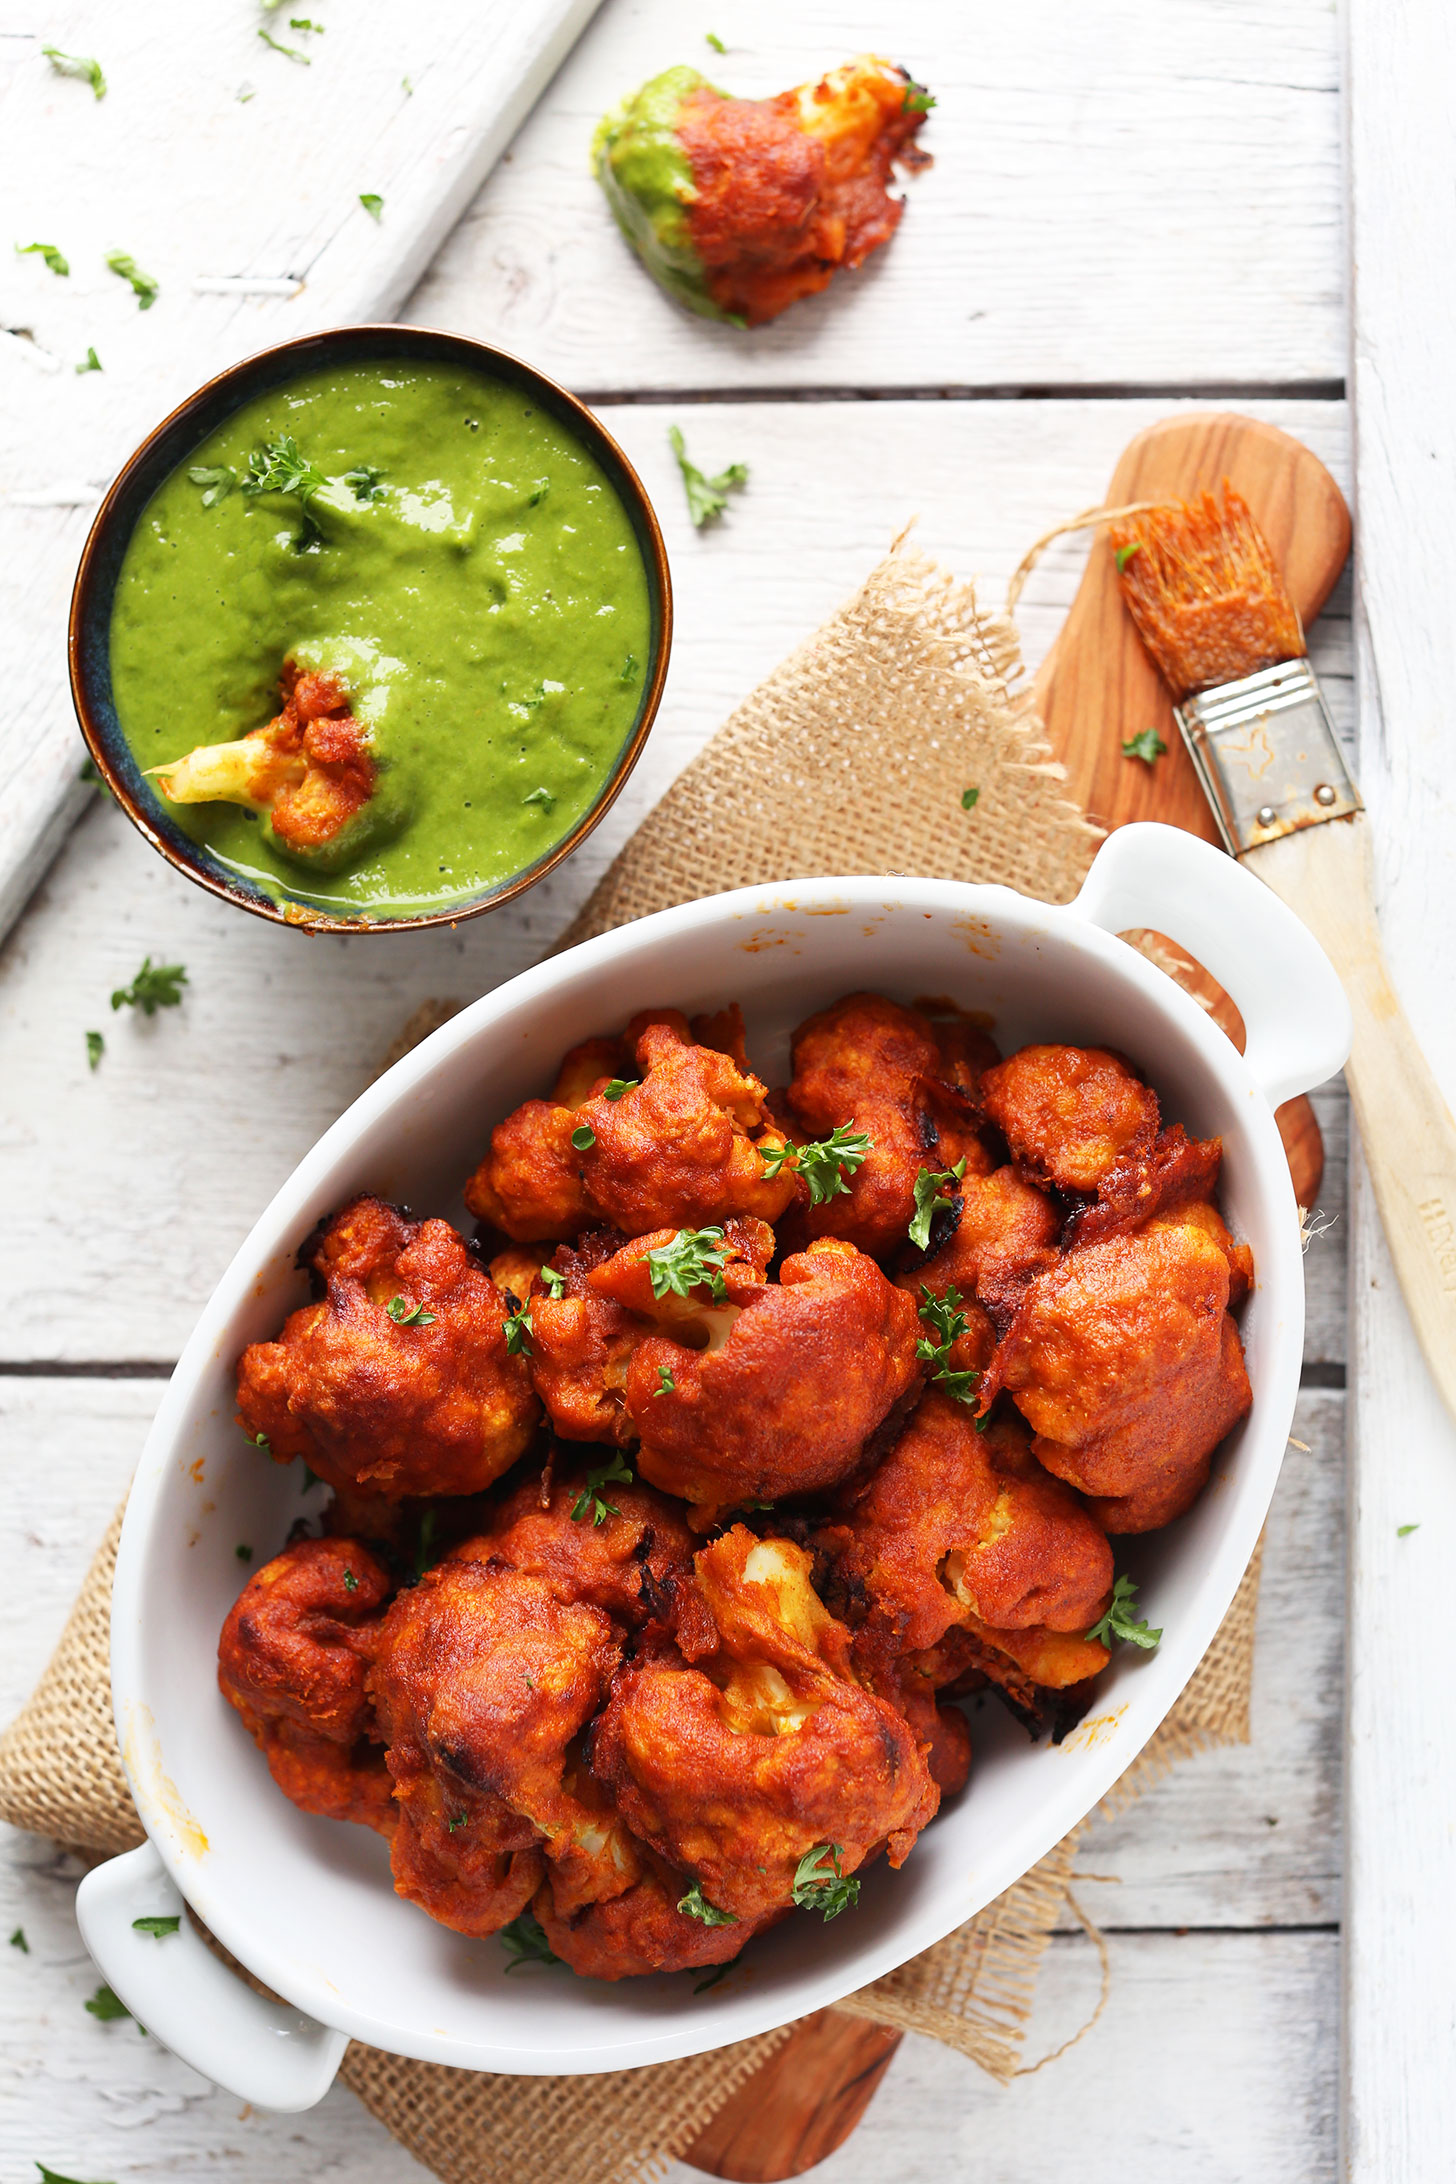 Bowl of Red Curry Cauliflower with Green Chutney for a vegan Indian recipe